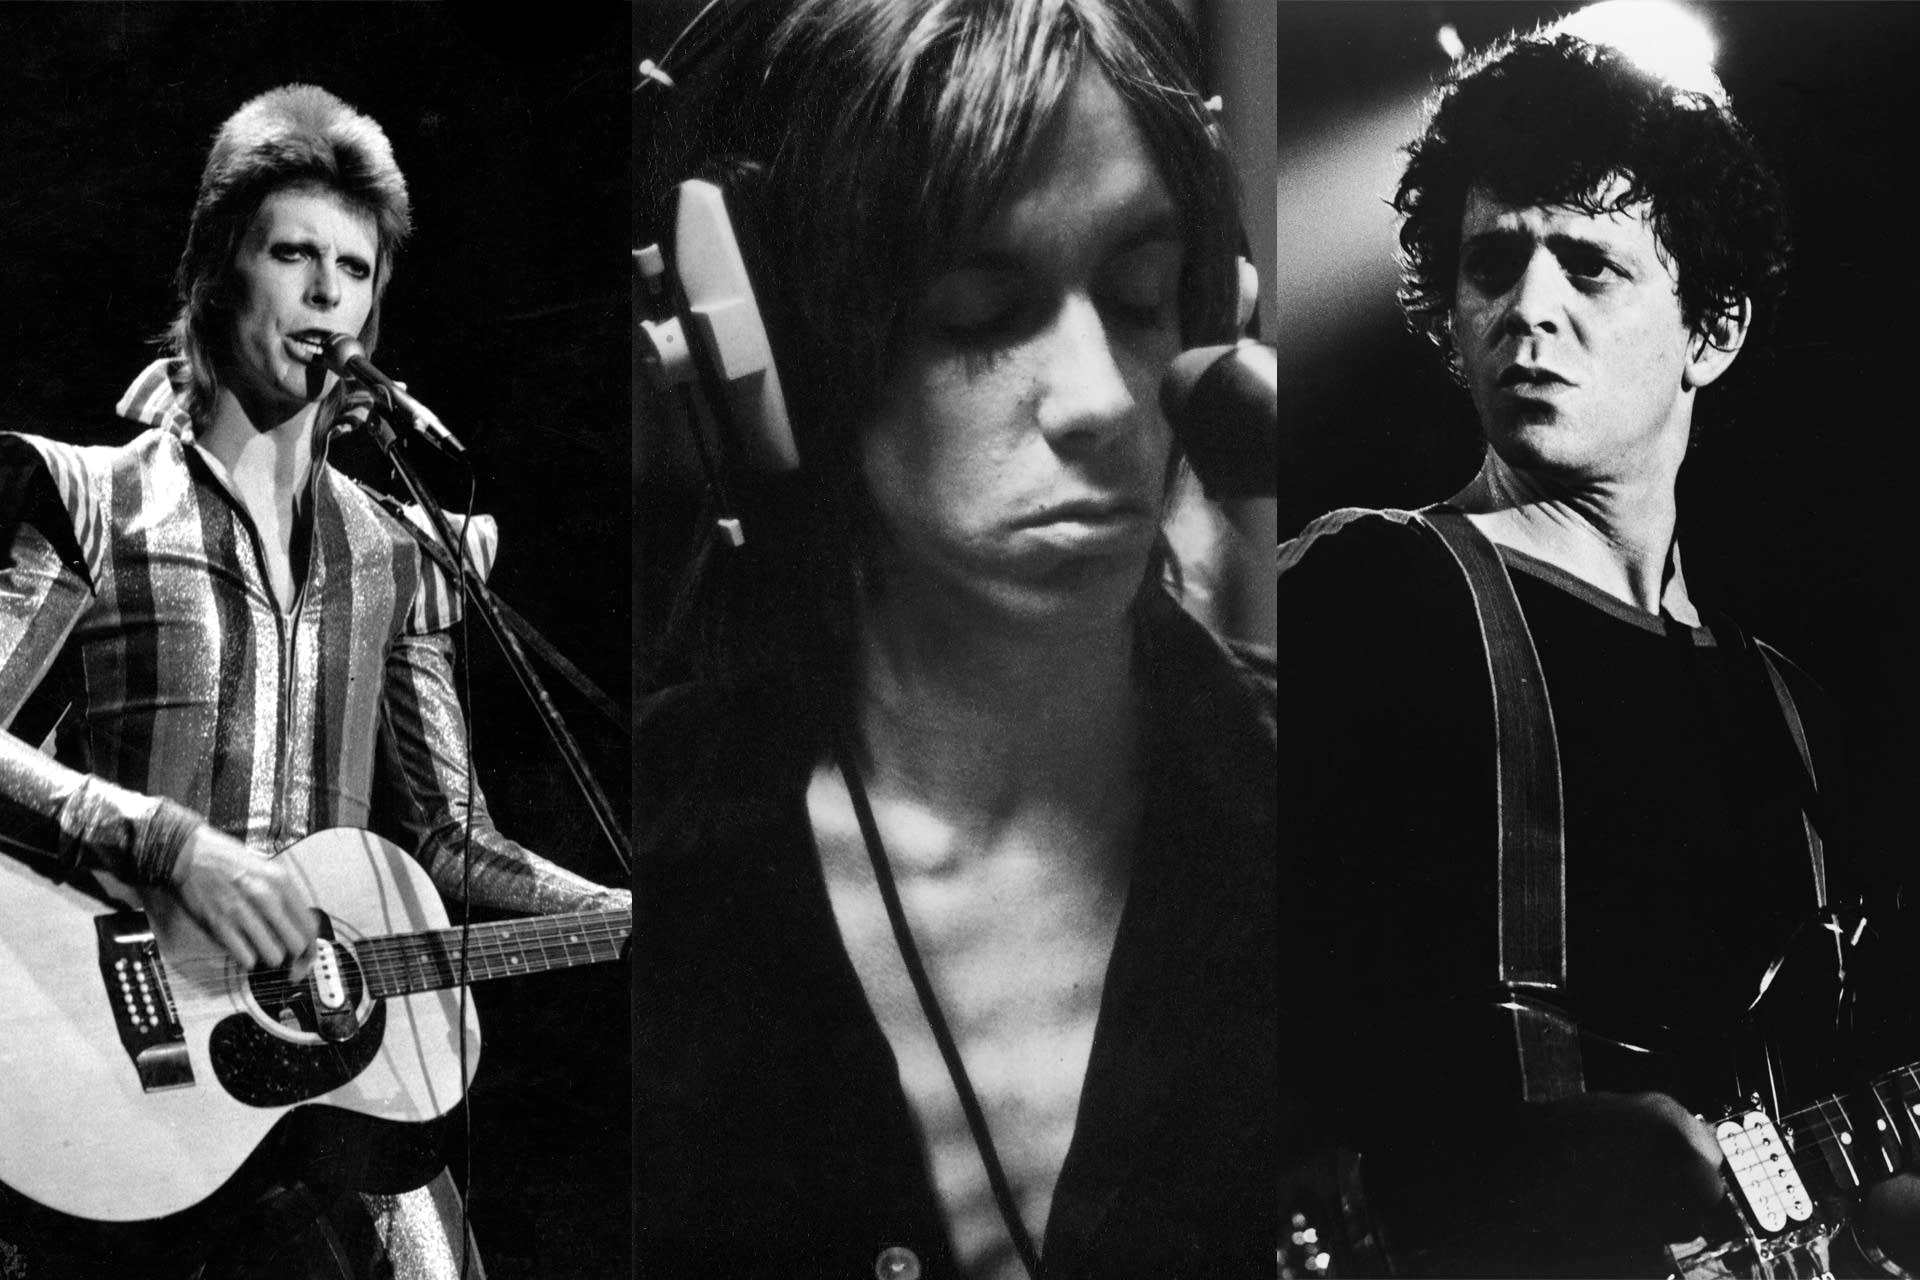 David Bowie, Iggy Pop and Lou Reed, early 1970s